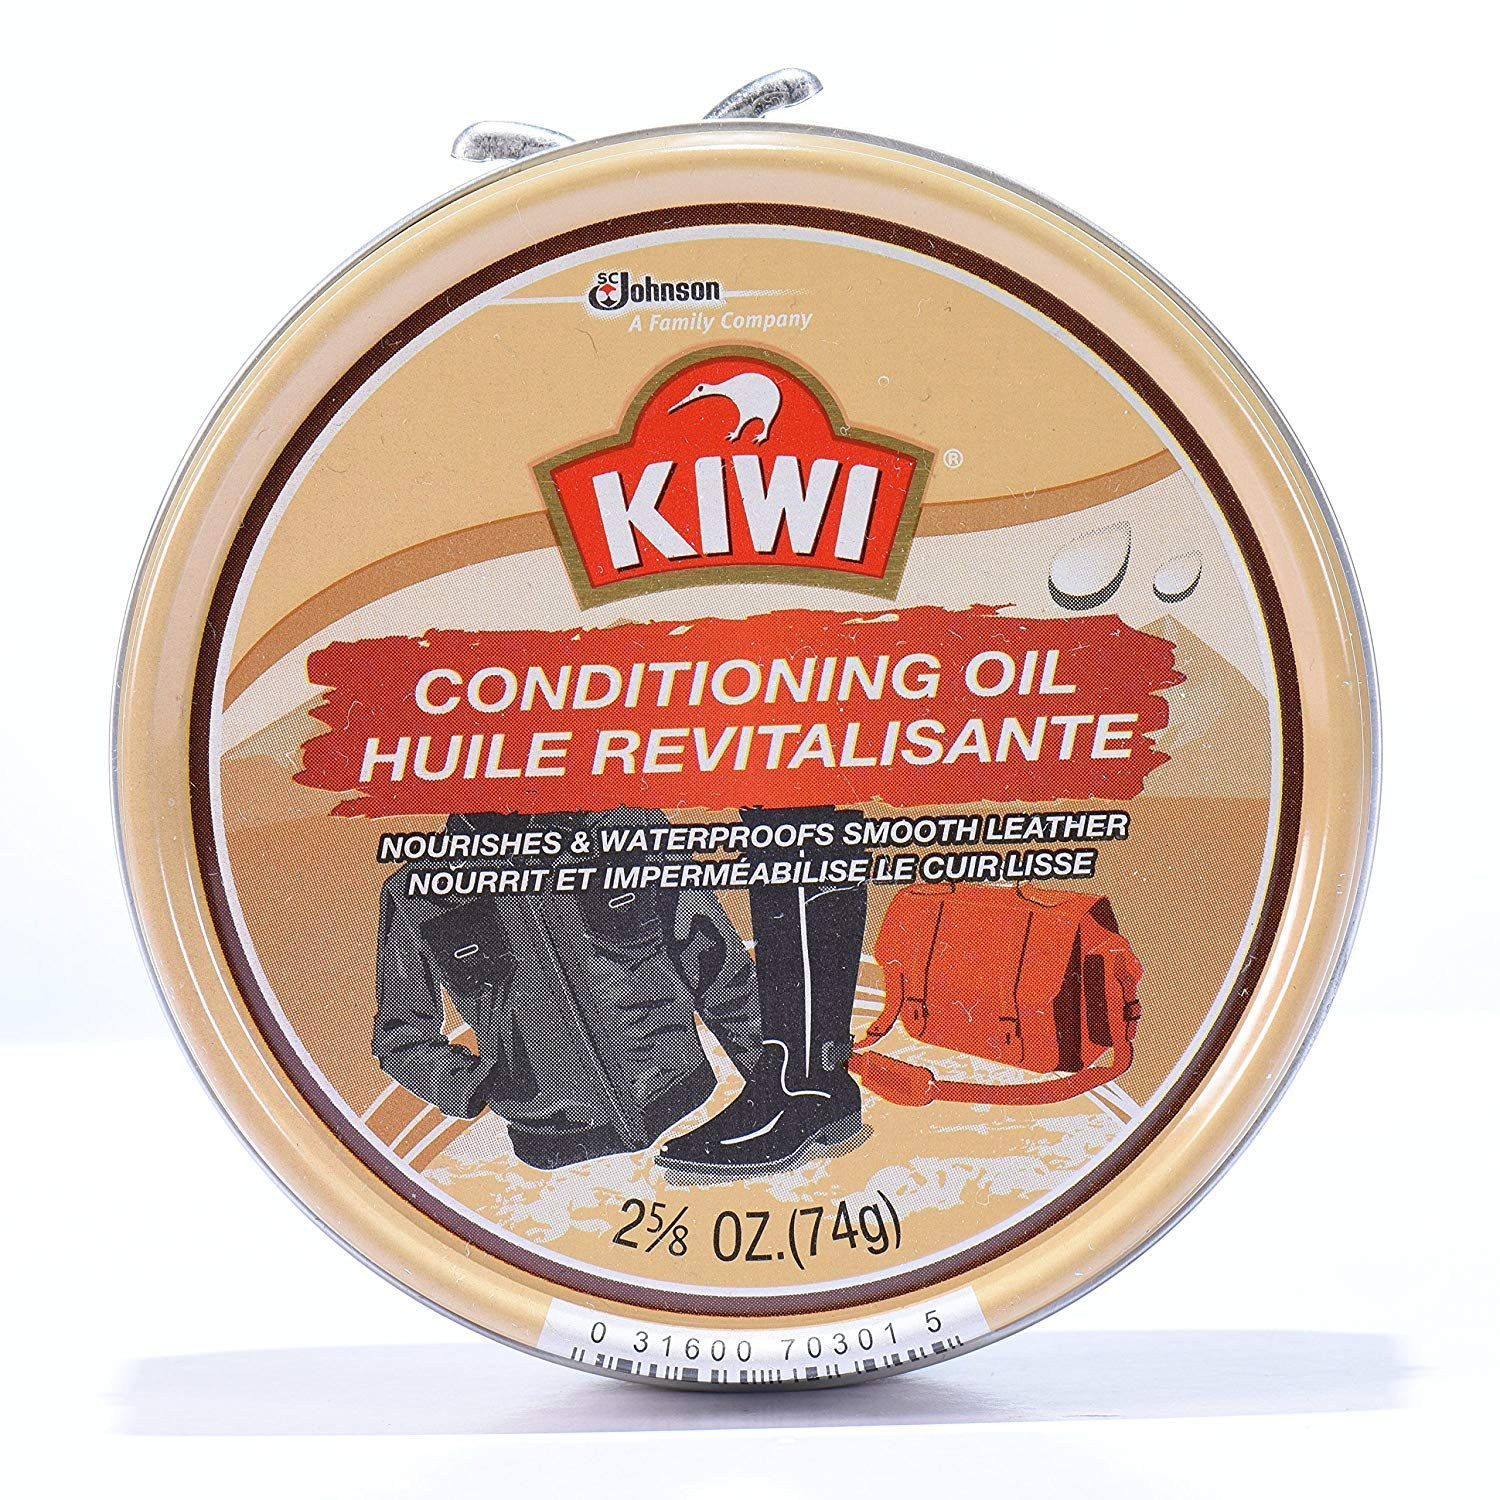 Kiwi Conditioning Oil, 2-5/8 oz (74g) (Pack - 6)